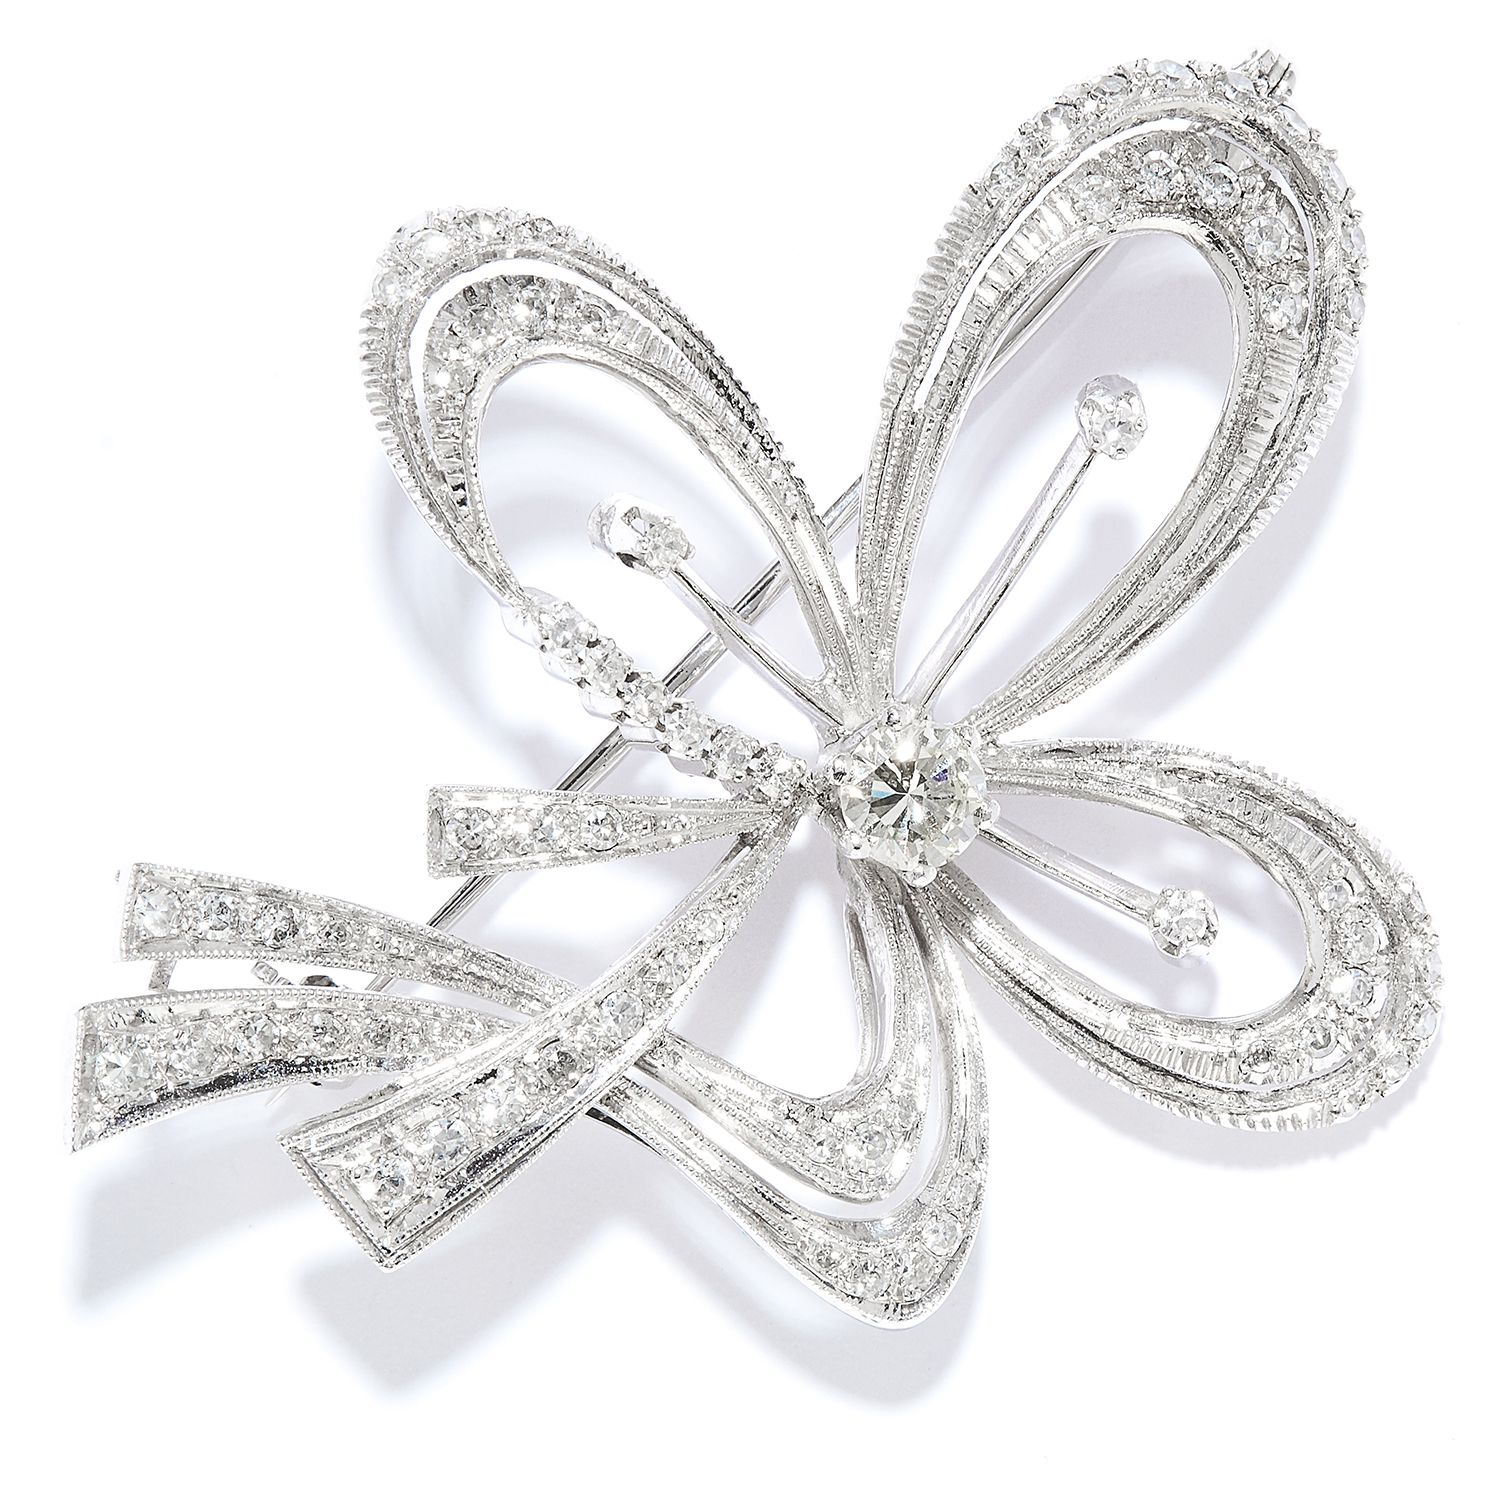 Los 13 - DIAMOND RIBBON BROOCH in 18ct white gold, designed as a ribbon and bow motif, set with a central